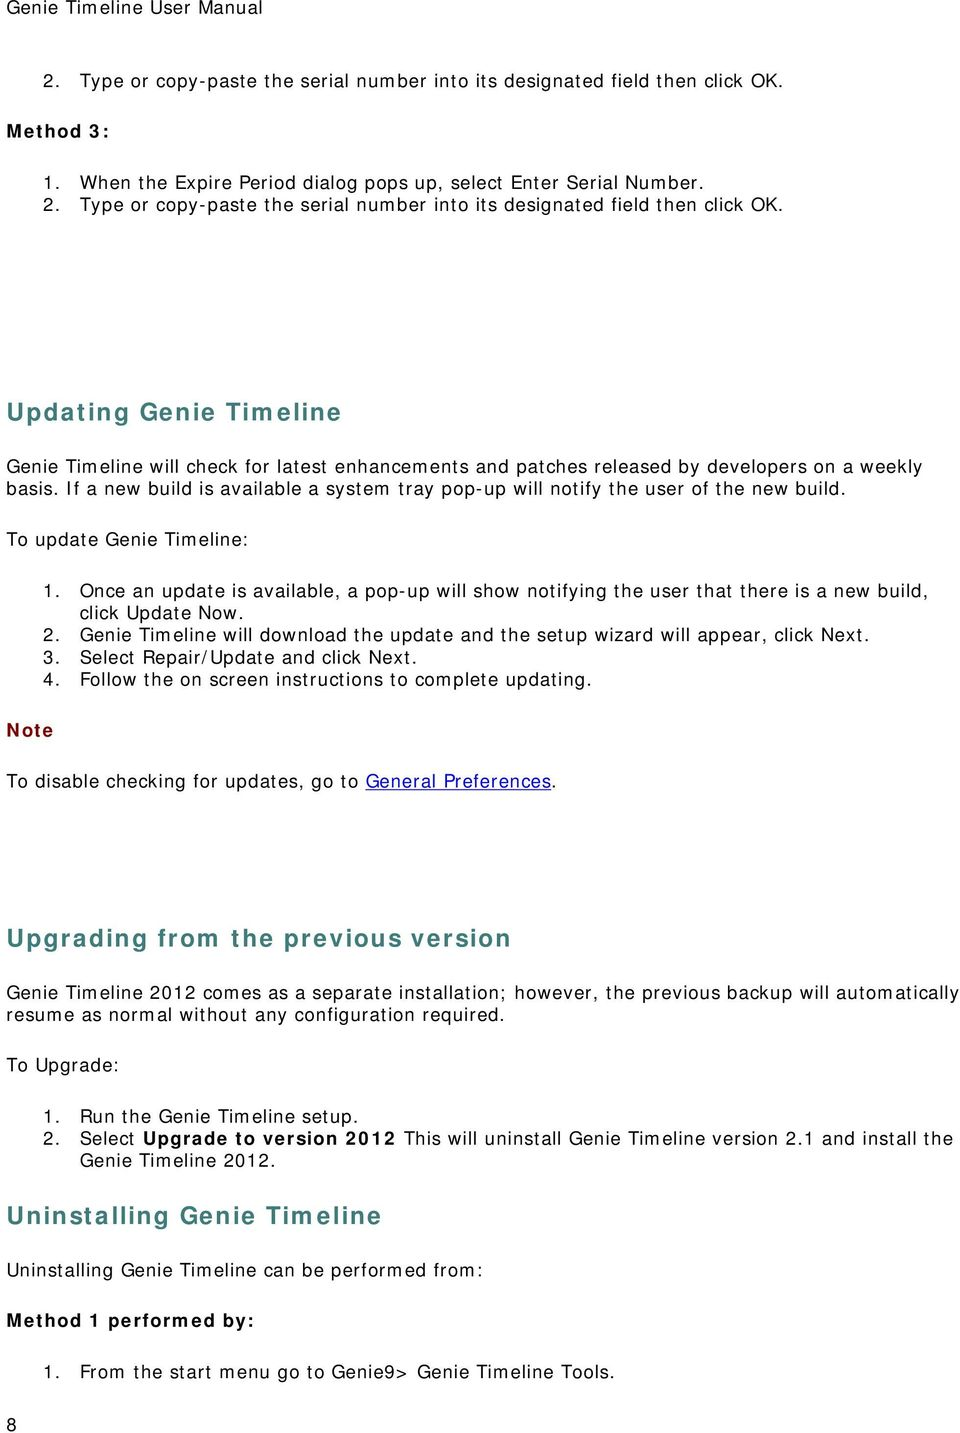 Genie Timeline User Manual S 40 Wiring Diagram Pdf Rh Docplayer Net Backup Manager Pro Software